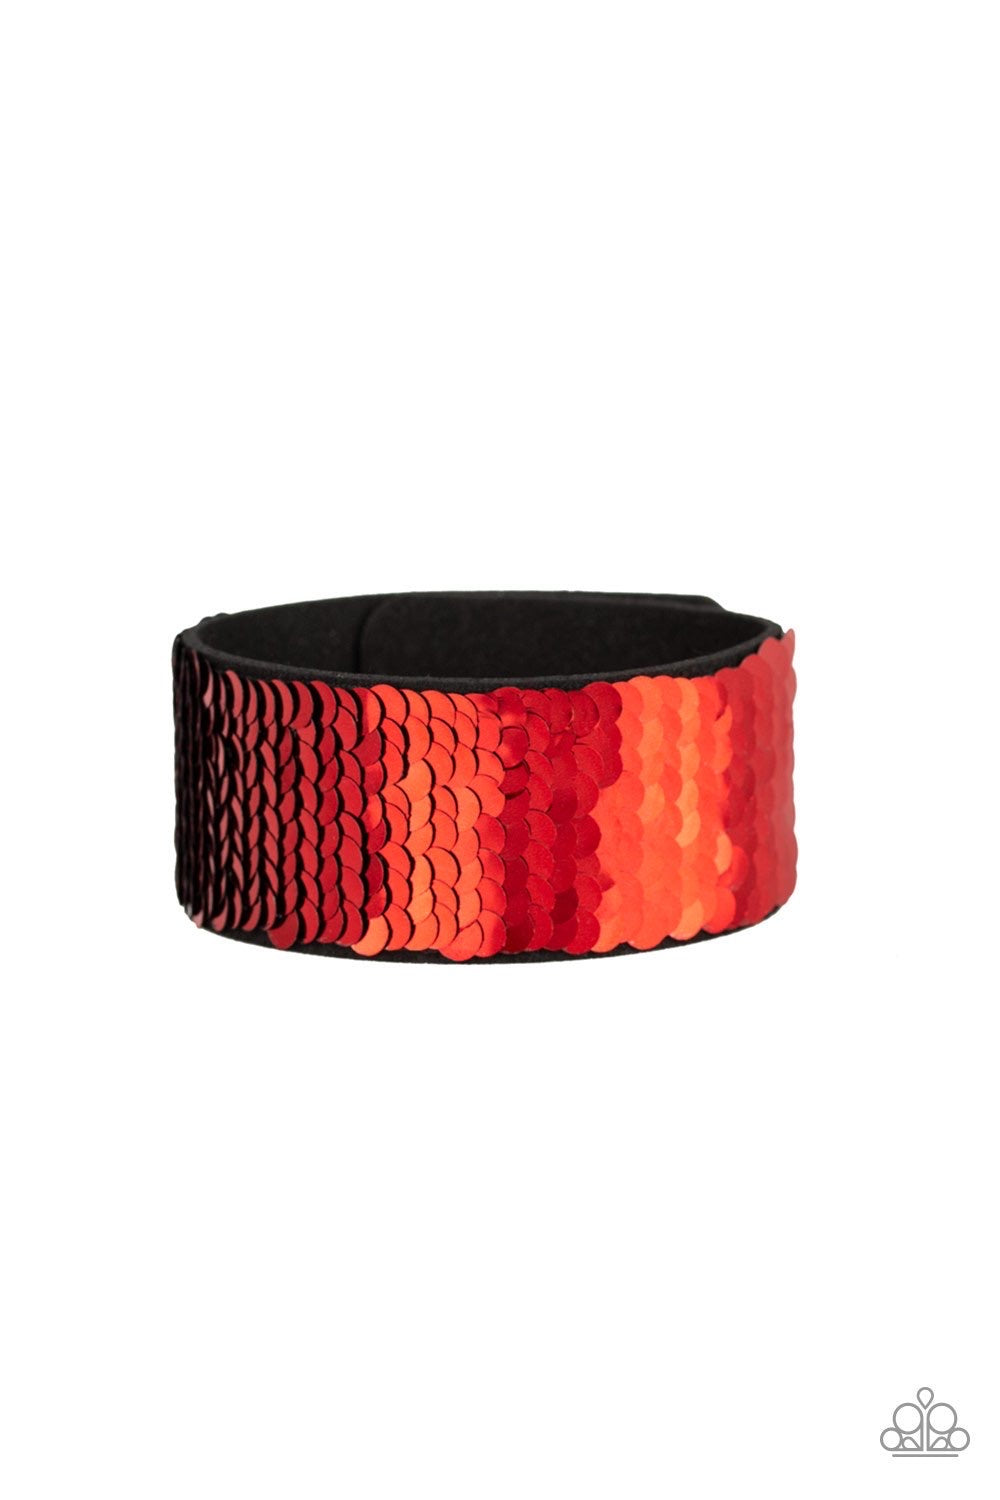 Mer-mazingly Mermaid - Red Urban Bracelet - Paparazzi Accessories